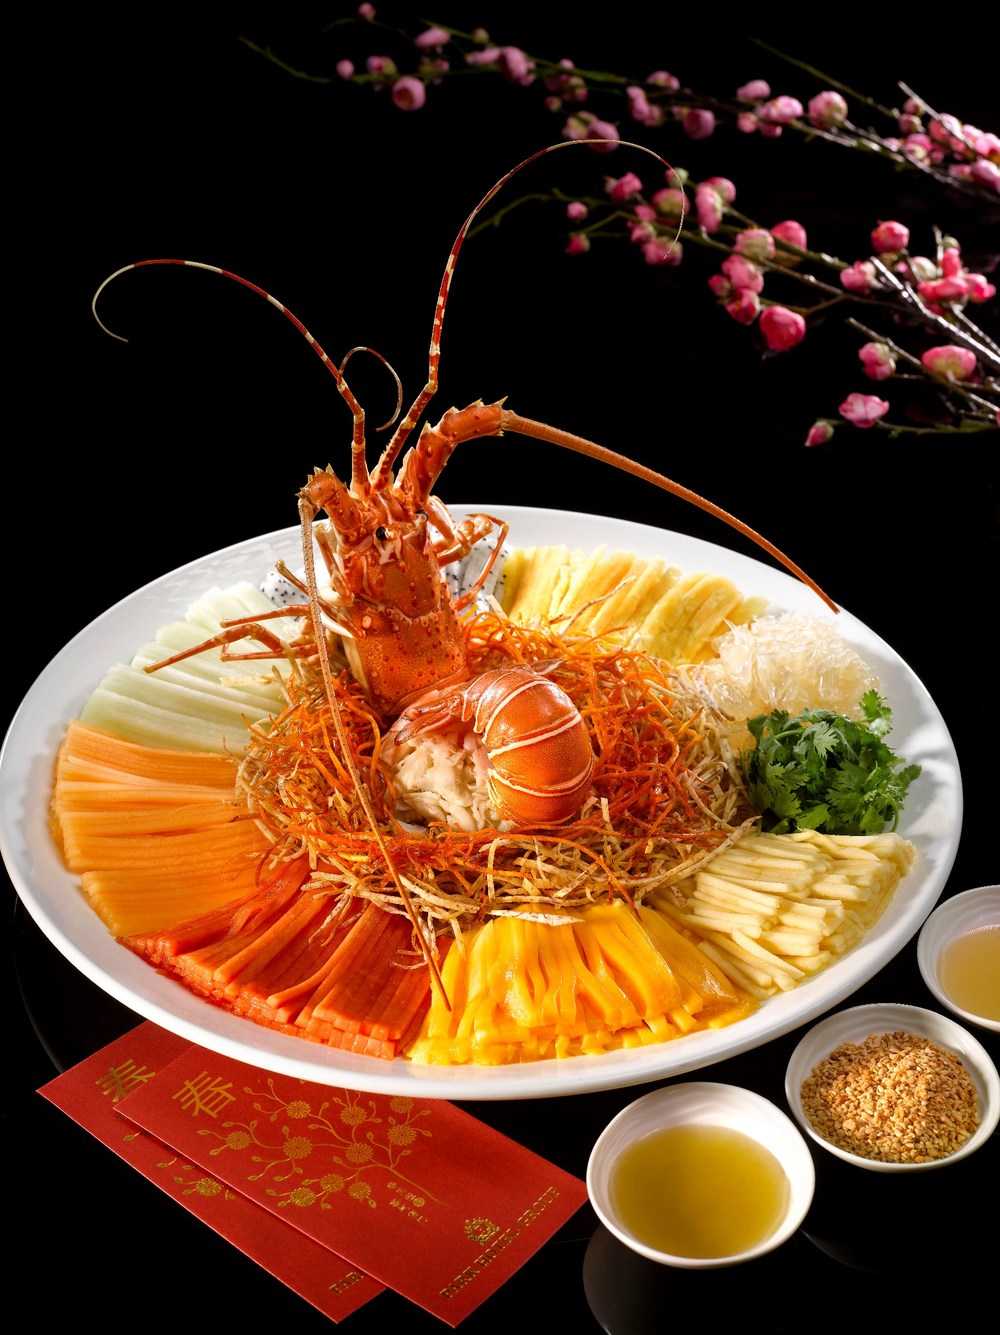 Rainbow Lobster & Crab Meat 'Lo Hei' (from S$68++) | Photo Credit: Park Hotel Clarke Quay